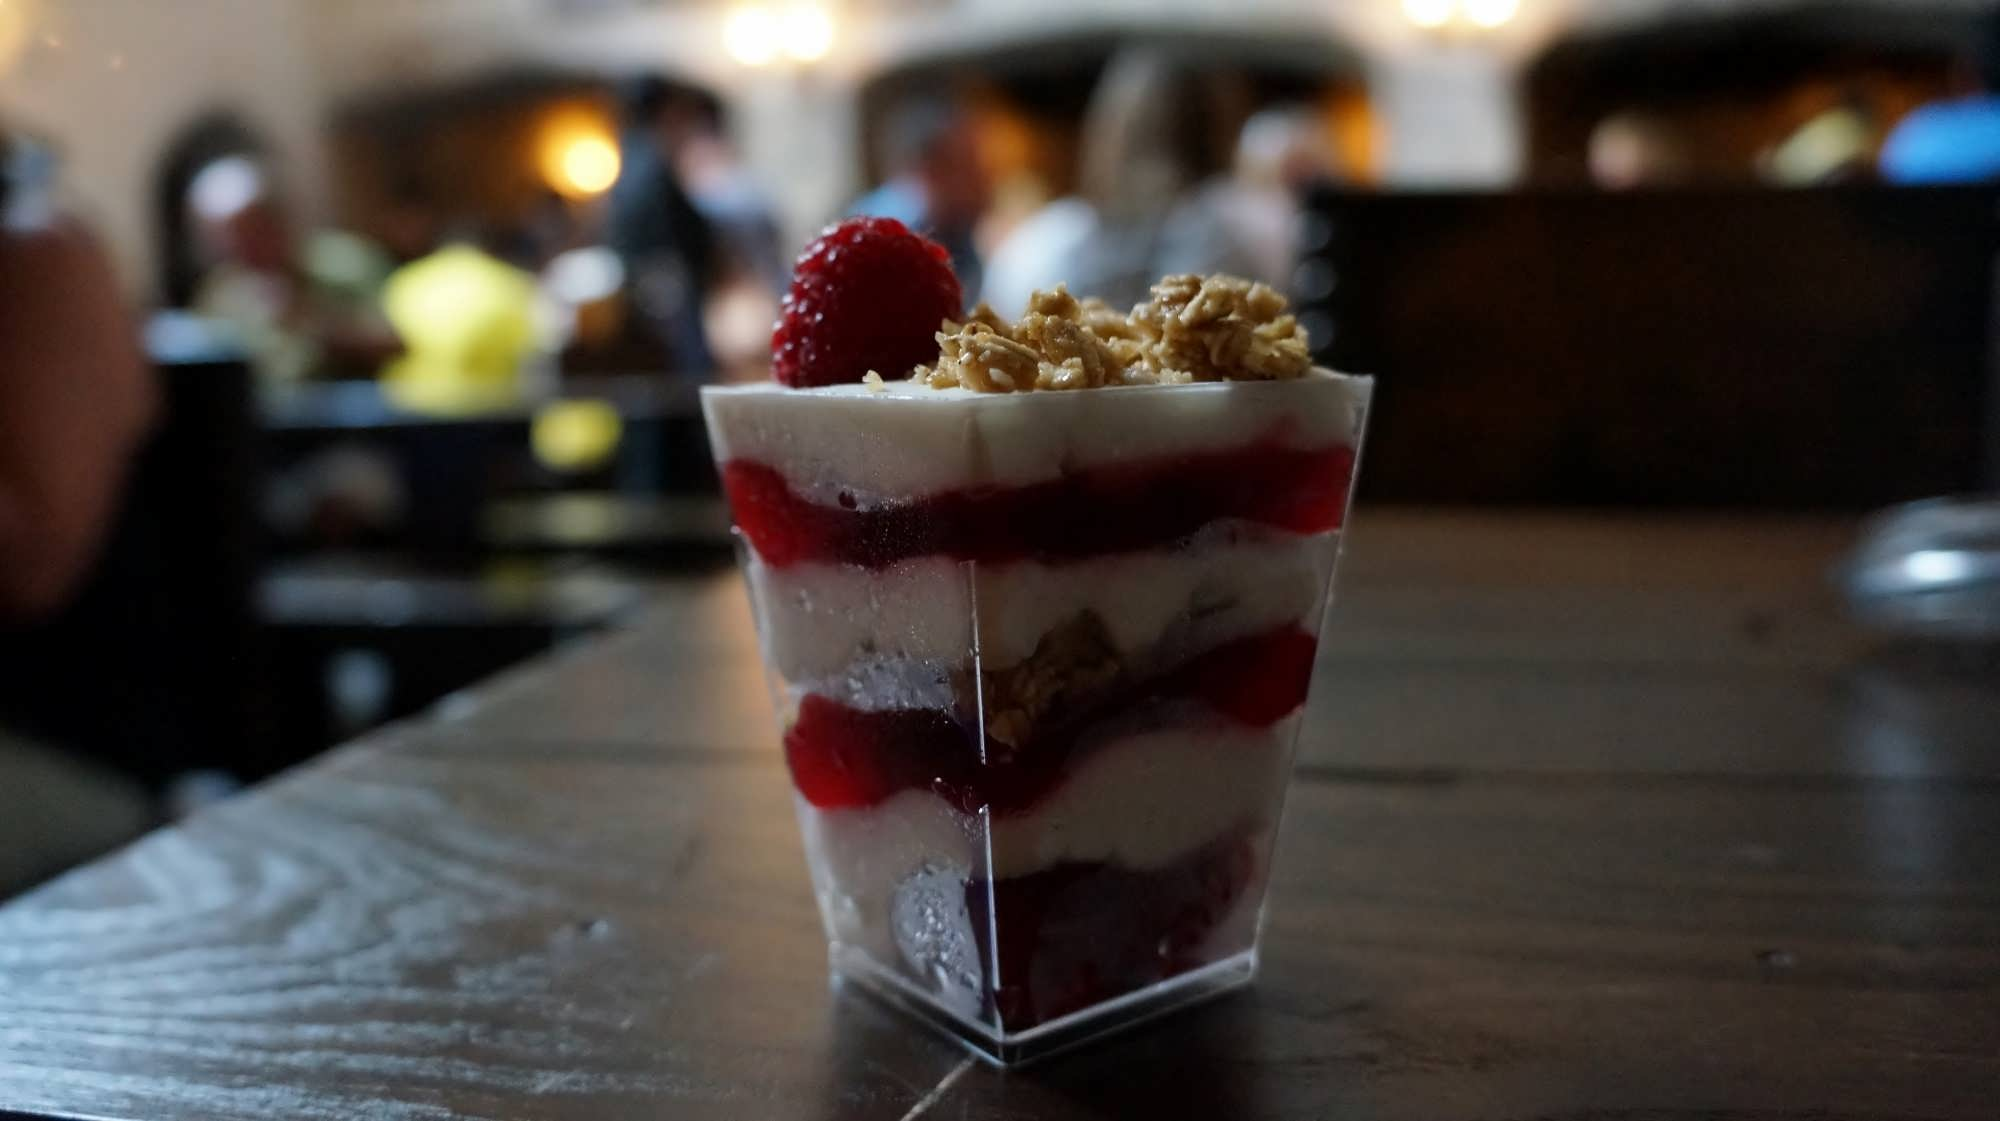 Cranachan at the Leaky Cauldron